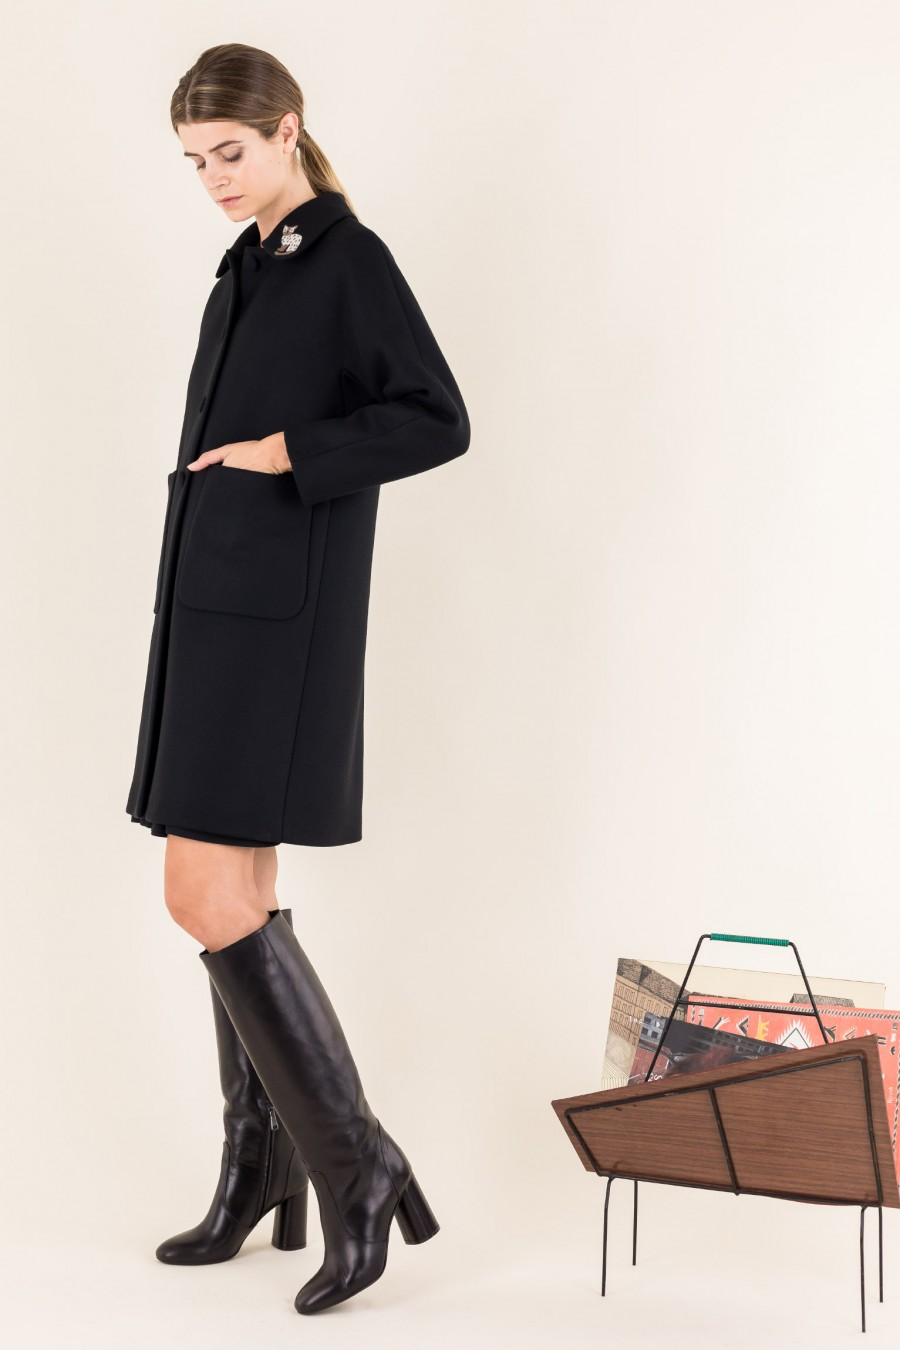 Black coat with collar